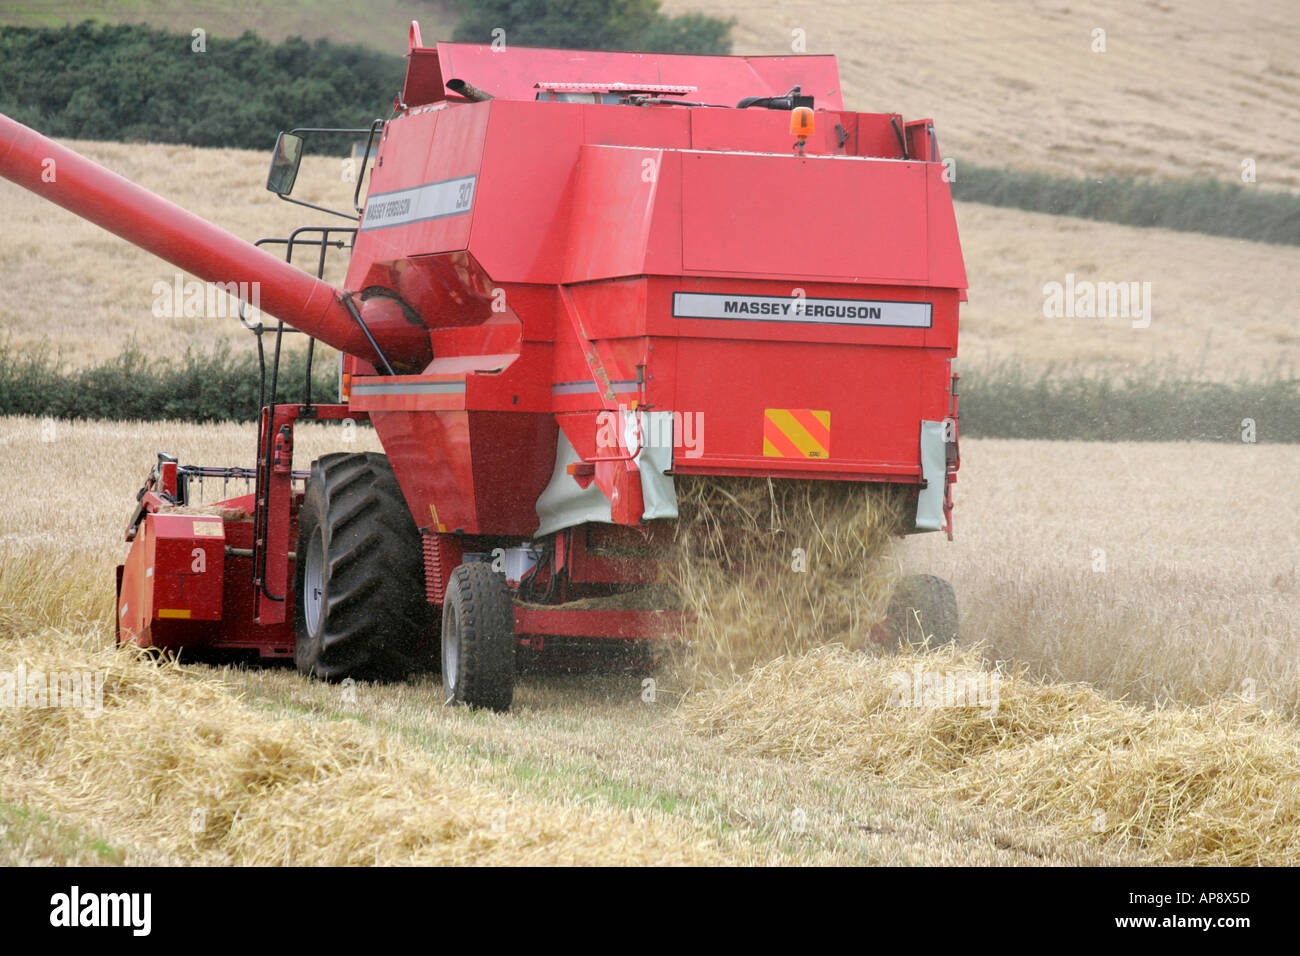 rear of Massey Ferguson red combine harvester in wheat field leaving straw lines newtownards county down northern ireland - Stock Image